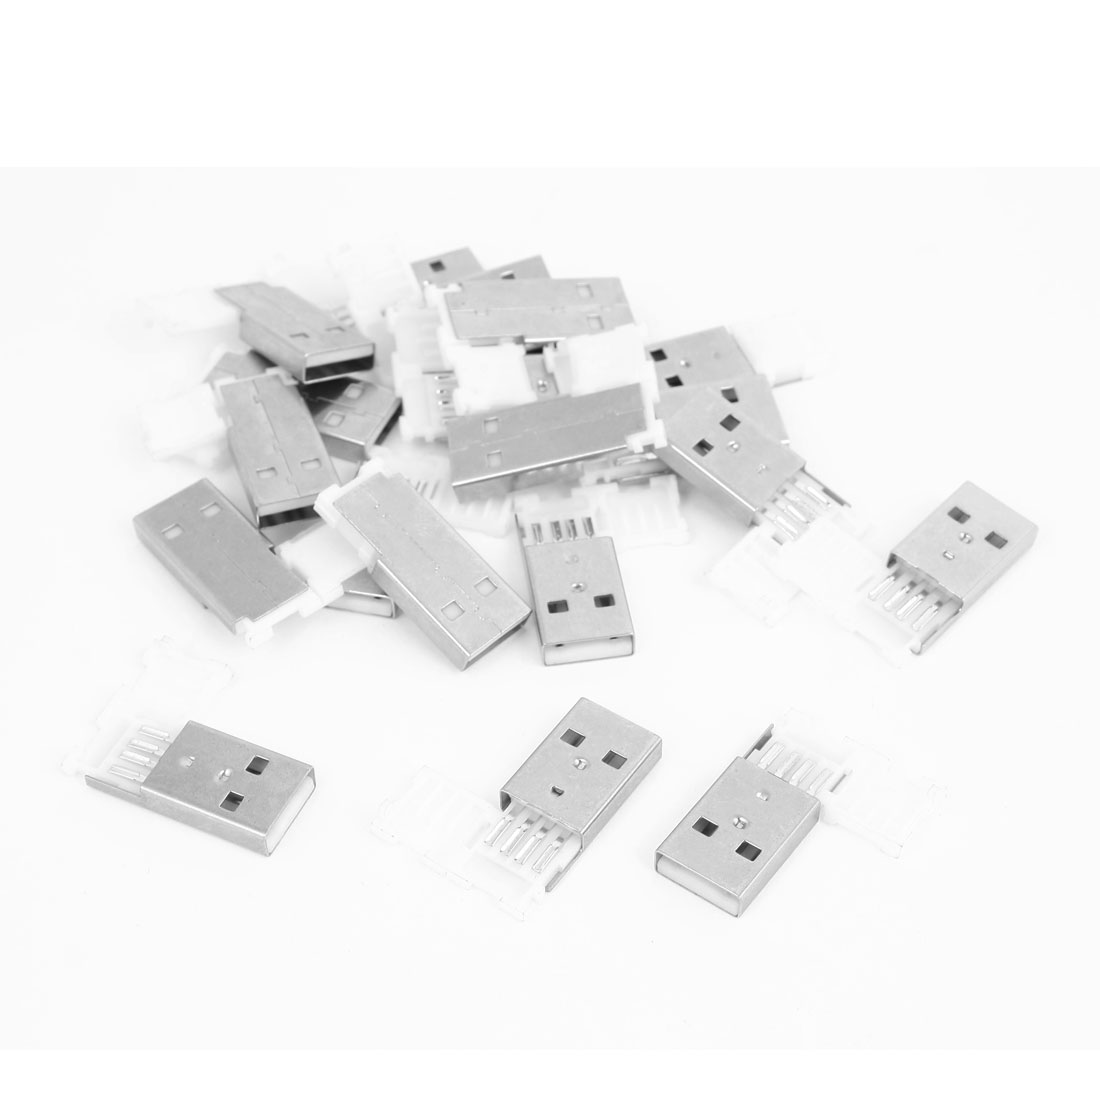 20 Pcs USB 2.0 Type A Male Jack Socket Cable Connector Silver Tone White